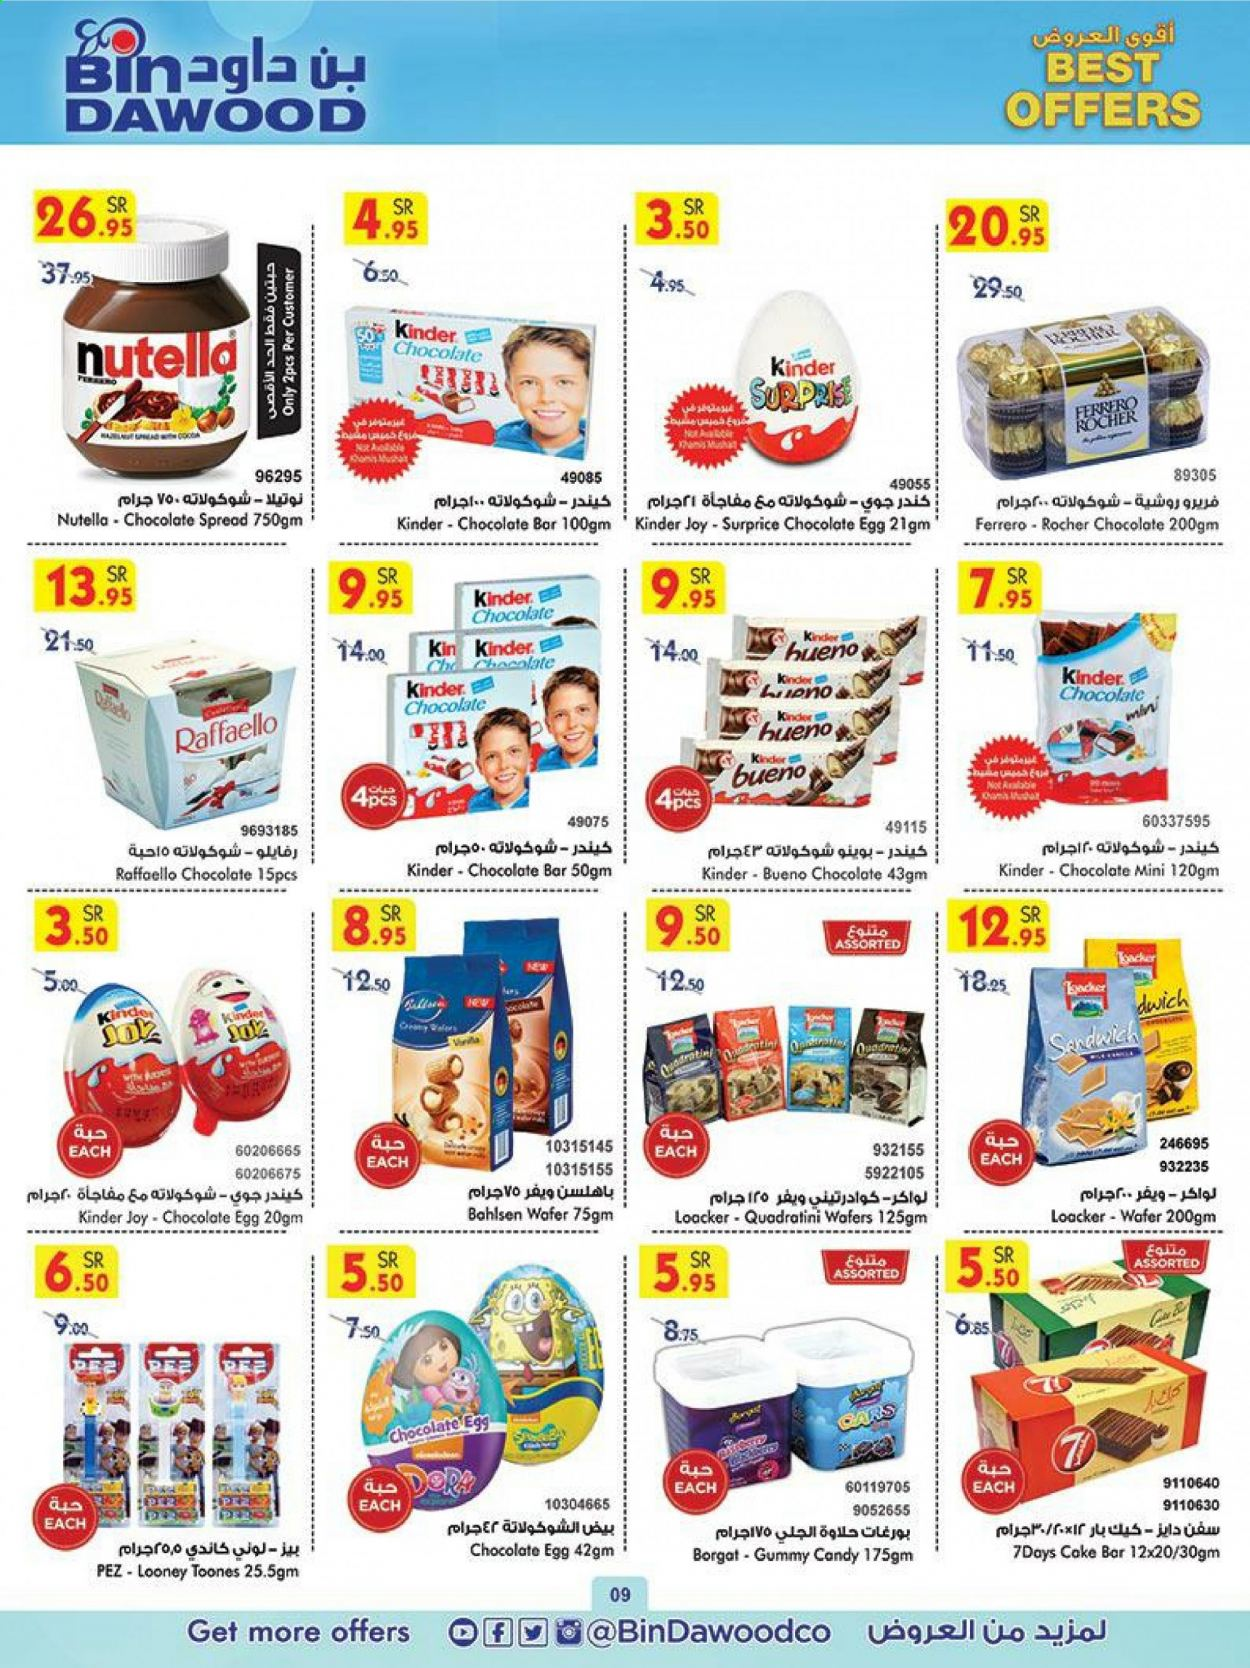 <retailer> - <MM.DD.YYYY - MM.DD.YYYY> - Sales products - ,<products from offers>. Page 9.